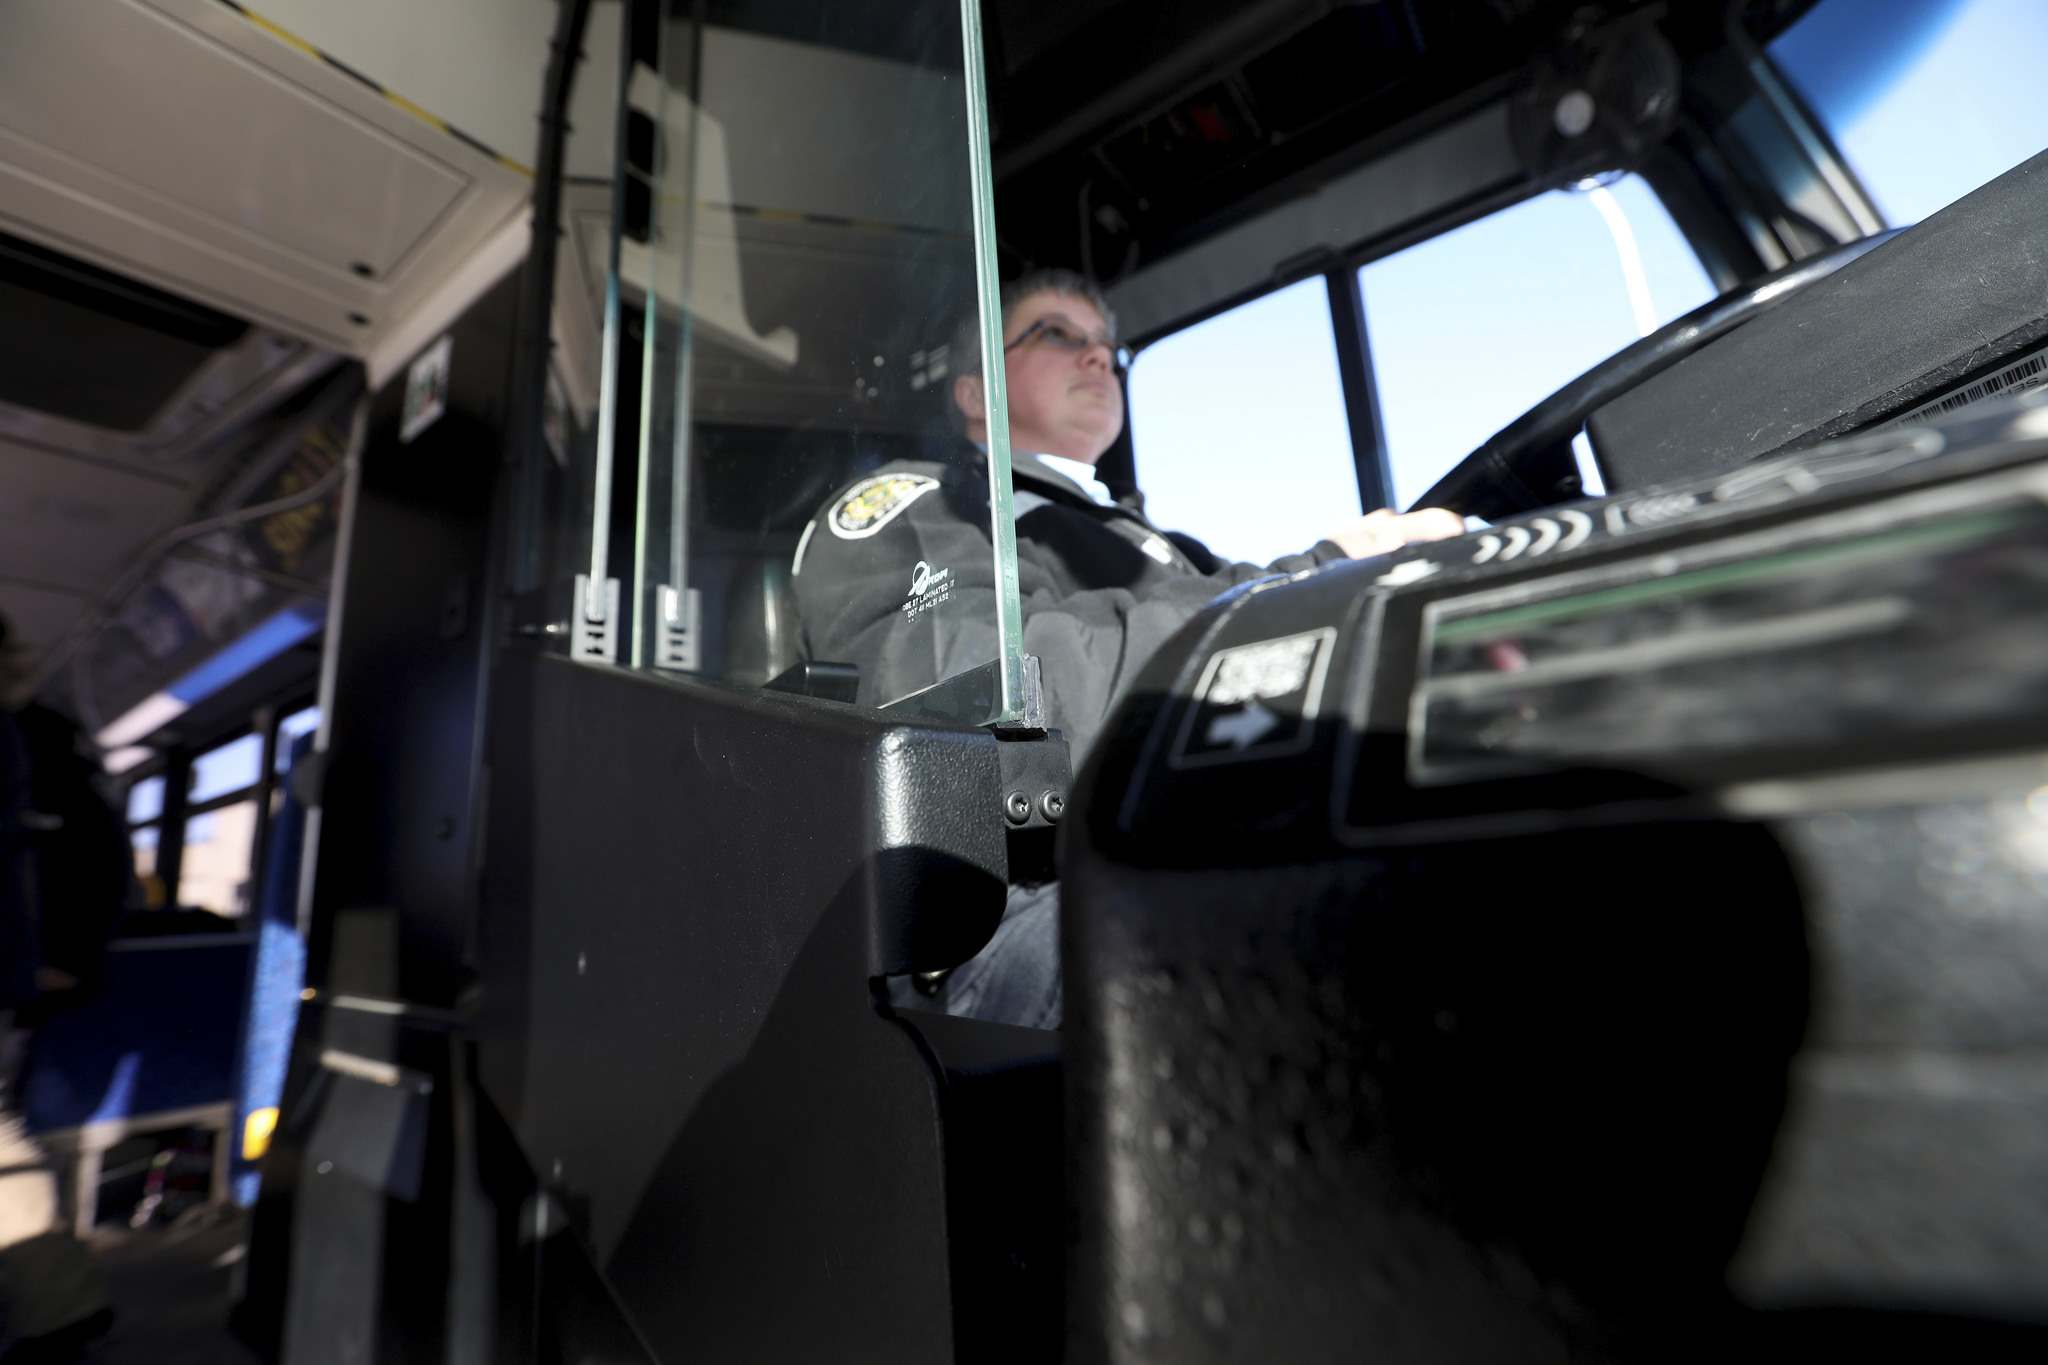 On Tuesday, the city's public works committee voted to install safety shields on the city's fleet of 630 buses over the next 18 months. (Ruth Bonneville / Winnipeg Free Press files)</p>